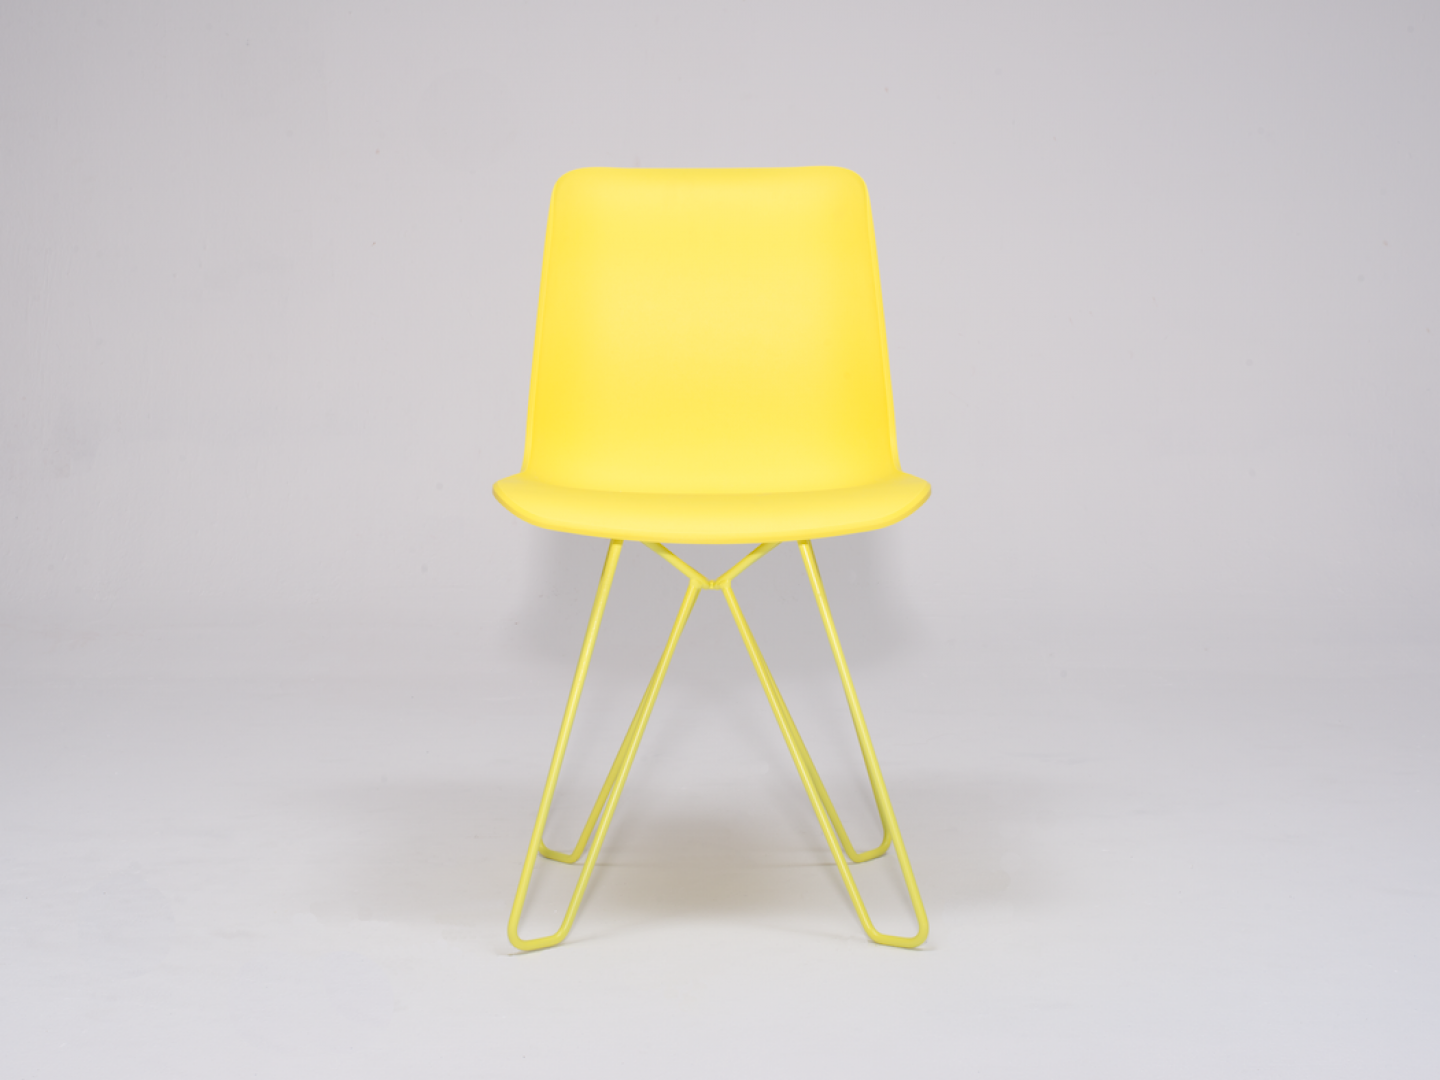 objekte-unserer-tage-08-studio-28-schaefer-chair-(high-res)